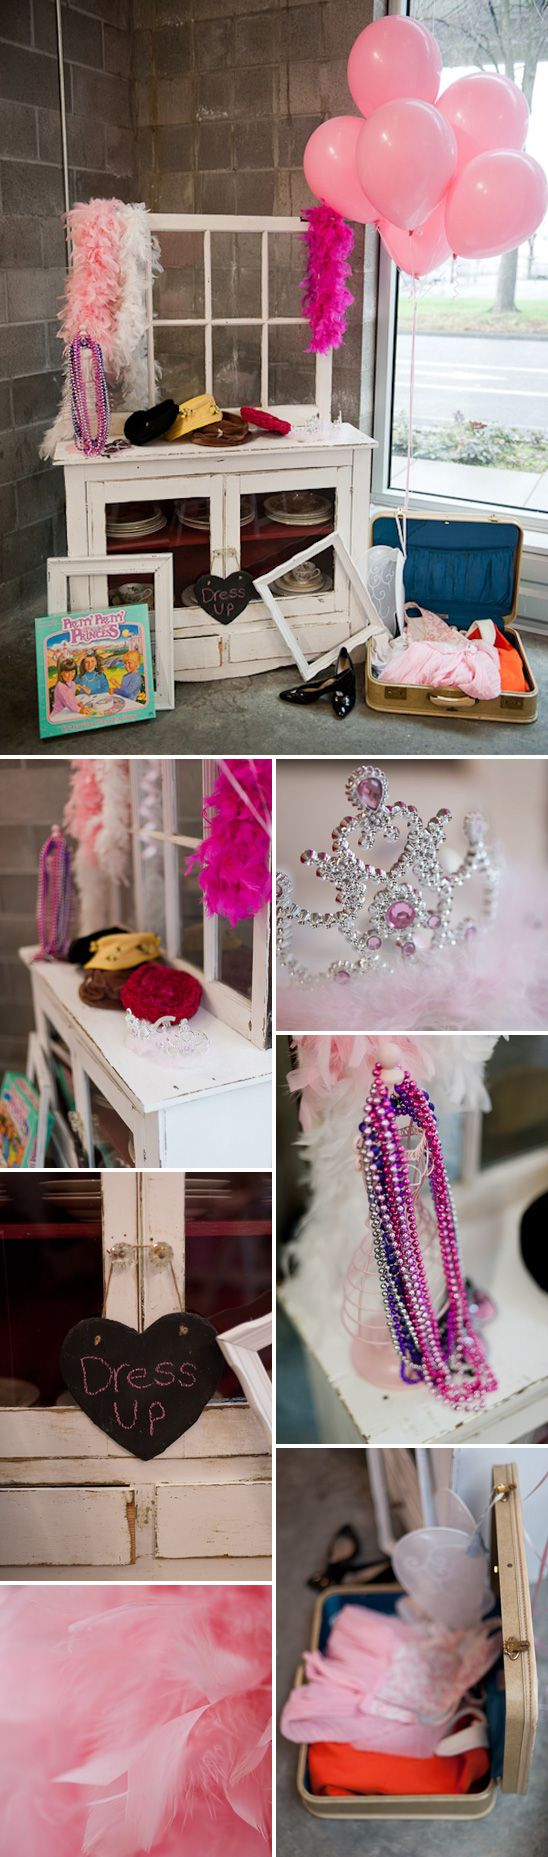 Tea Party Dress Up Ideas 4